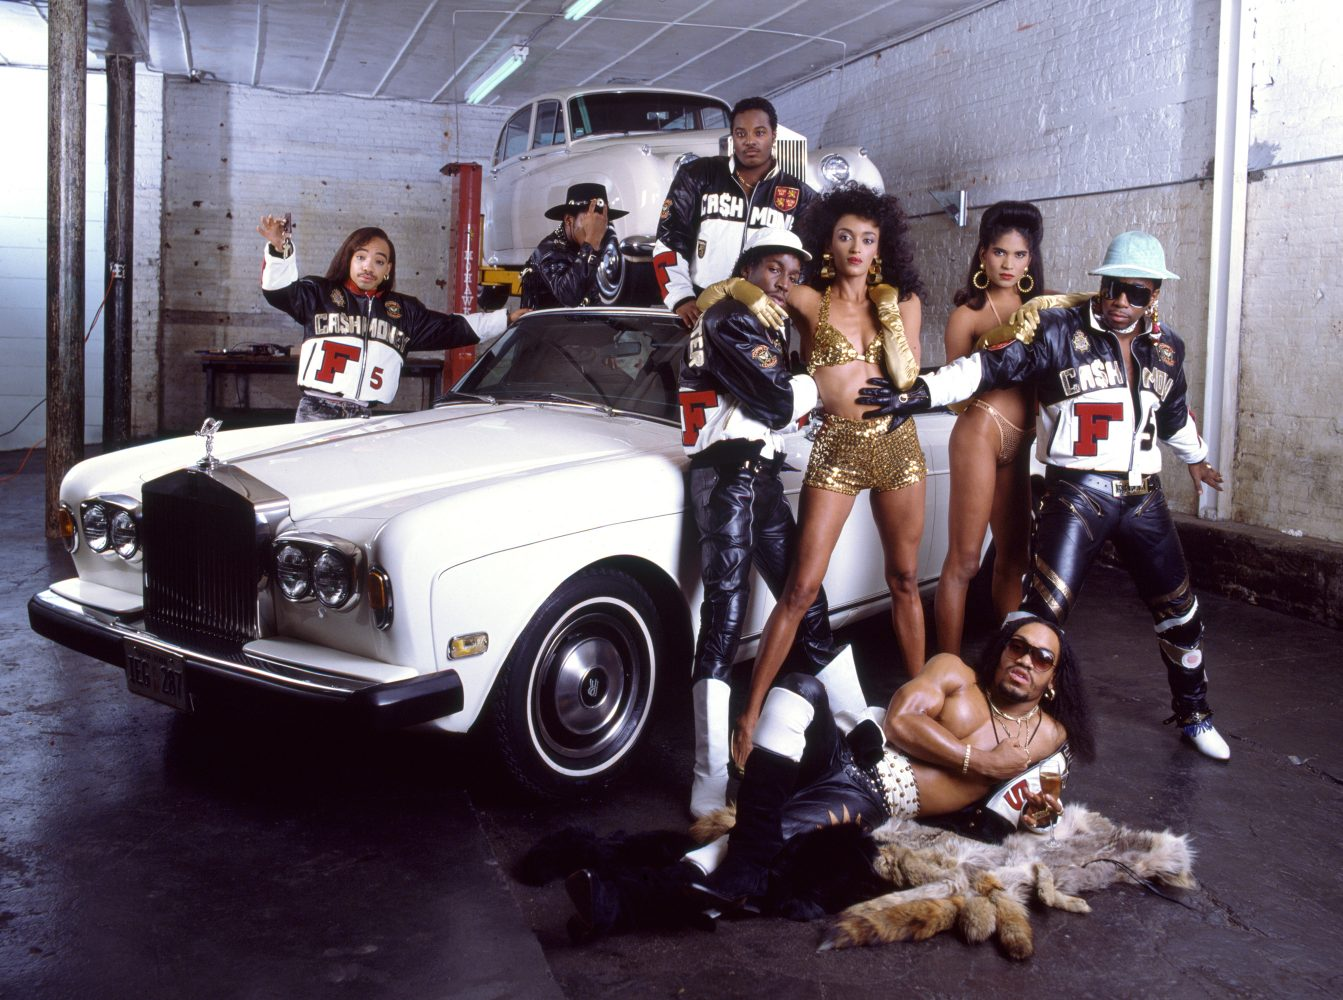 Grandmaster Flash & The Furious Five - Freedom Part 1& 2